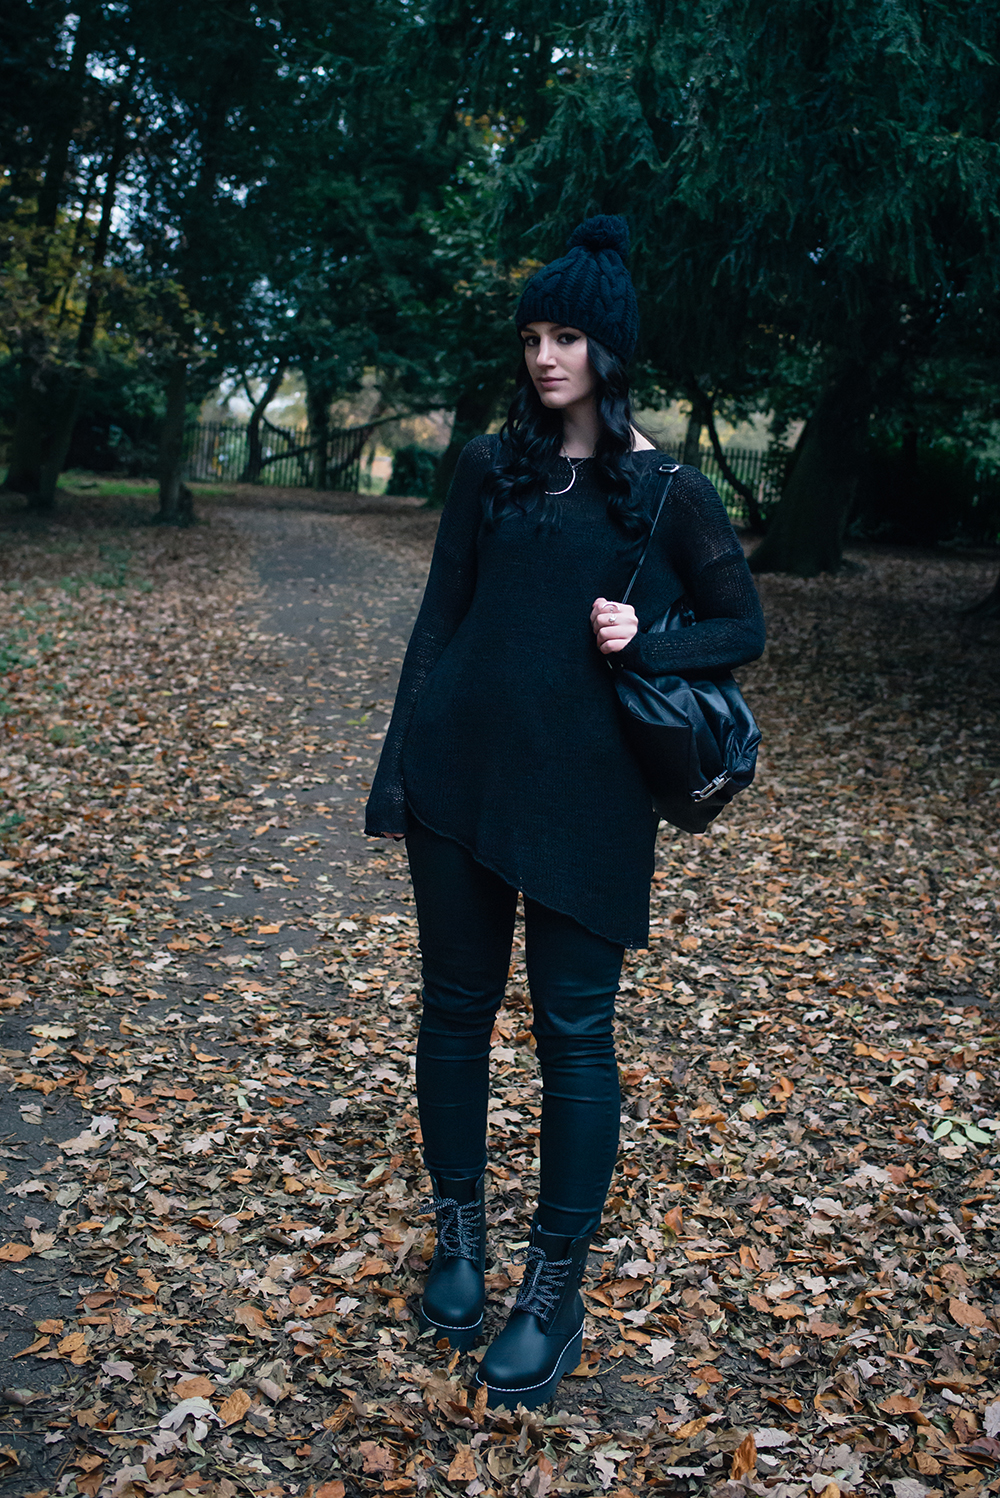 Fashion blogger Stephanie of FAIIINT wearing pom pom beanie hat, H&M black asymmetric knit jumper, coated skinny jeans, Dos61 high rubber boots, Topshop backpack. All black autumn outfit.